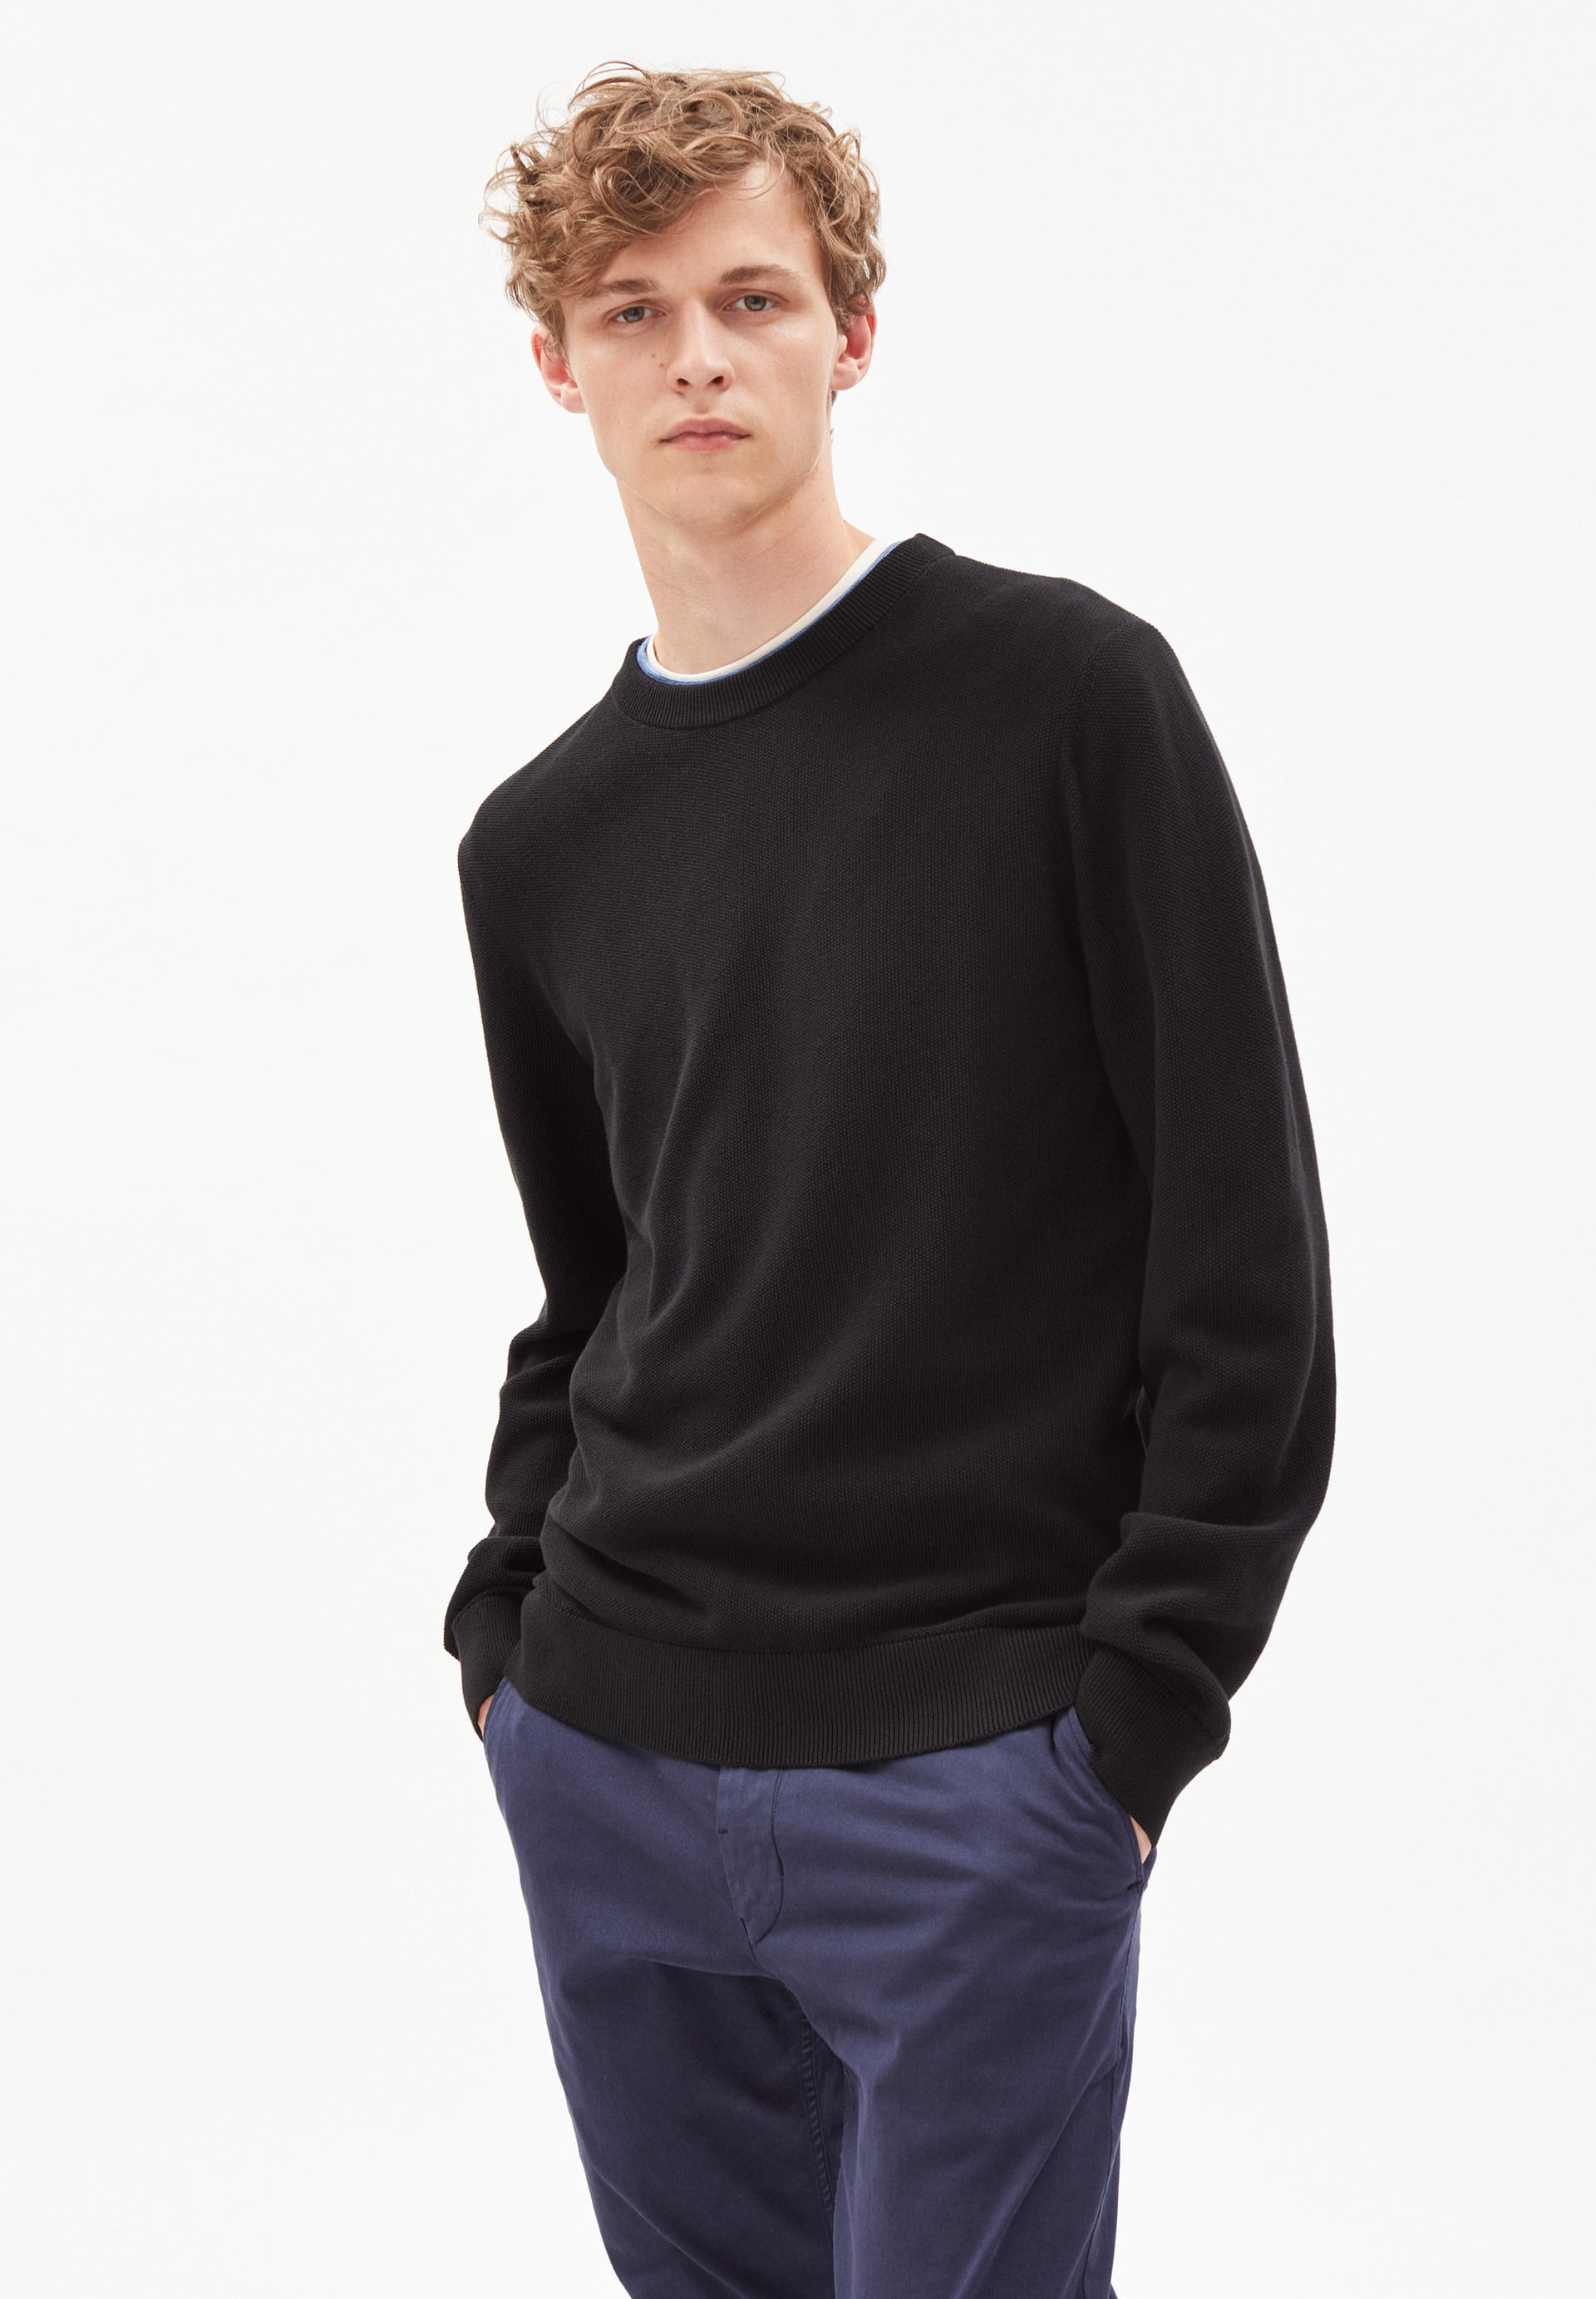 GRAANO COMPACT Sweater made of Organic Cotton